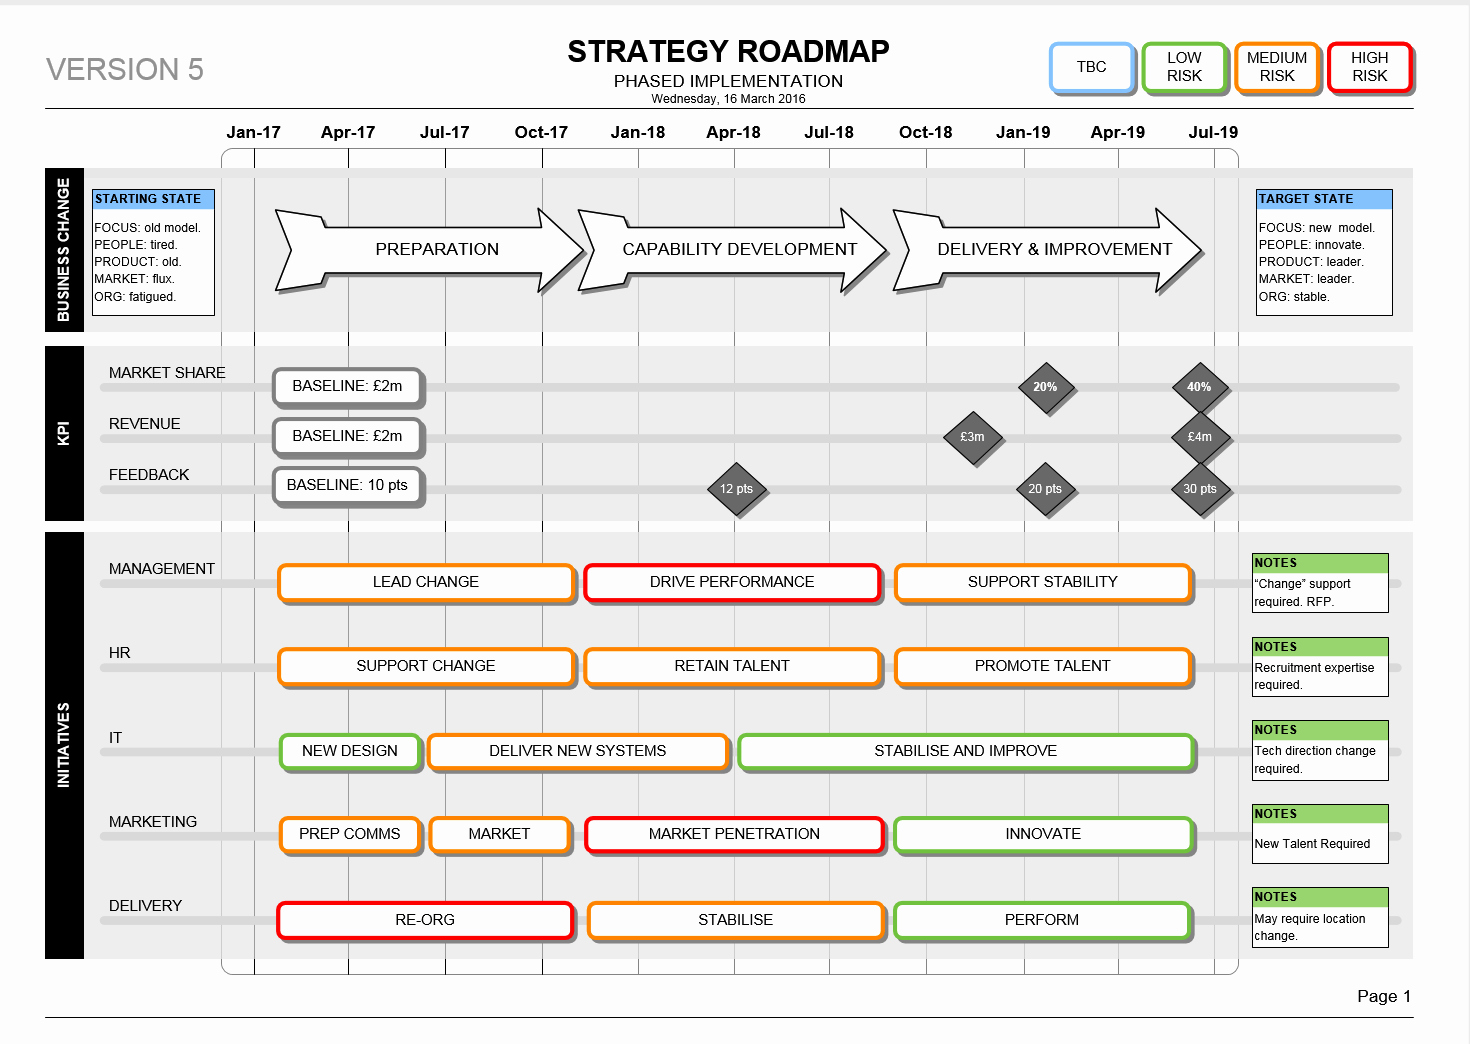 Strategy Business Plan Template Luxury Strategy Roadmap Template Visio Kpi & Delivery